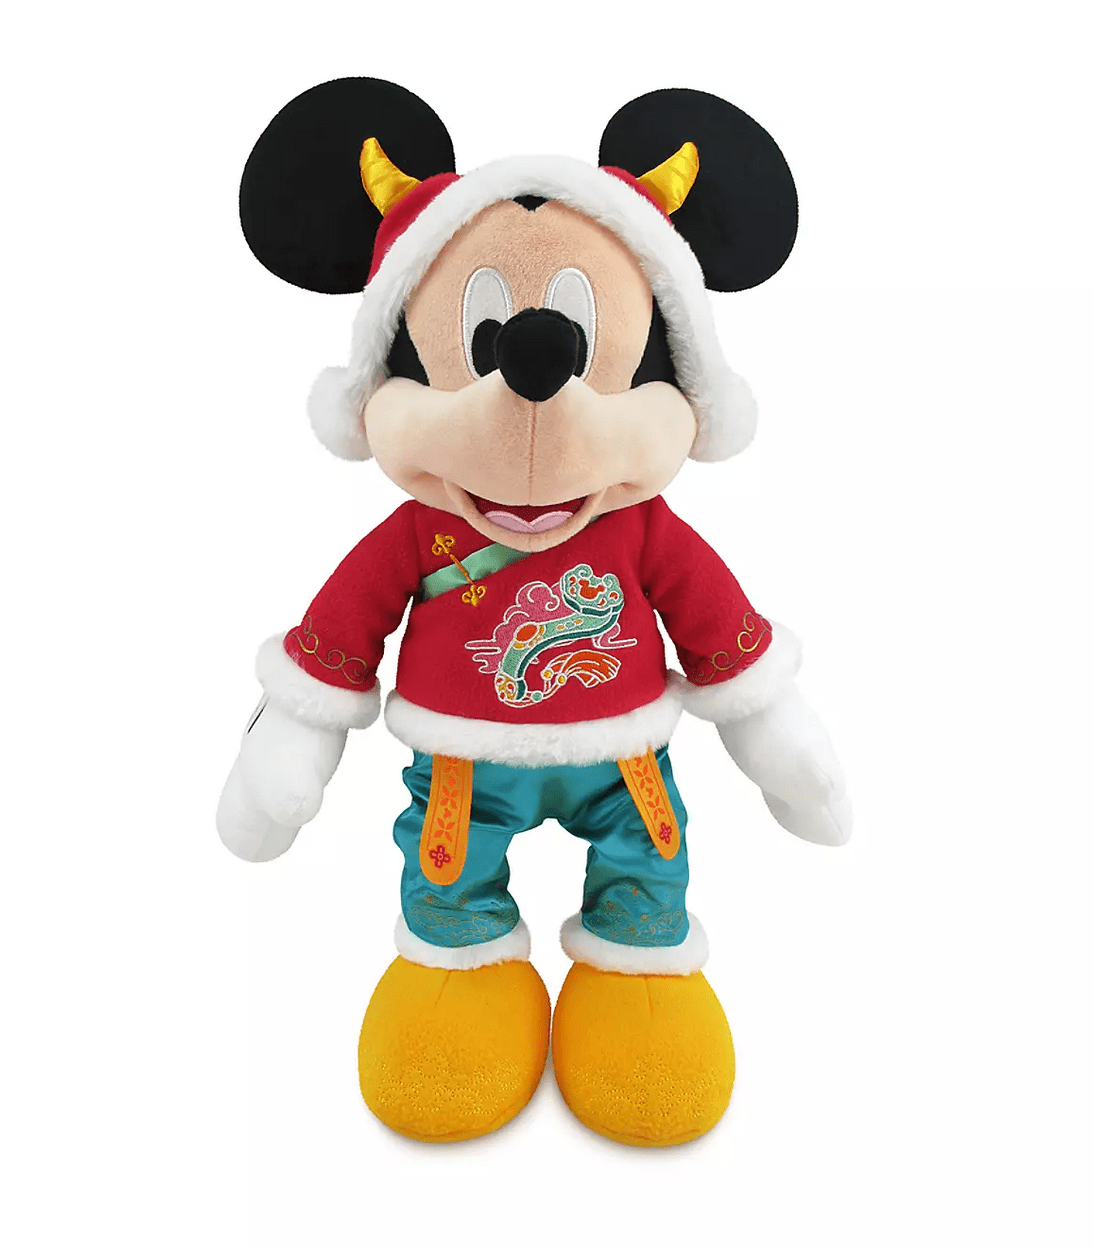 Disney Store: Extra 25% off sitewide.